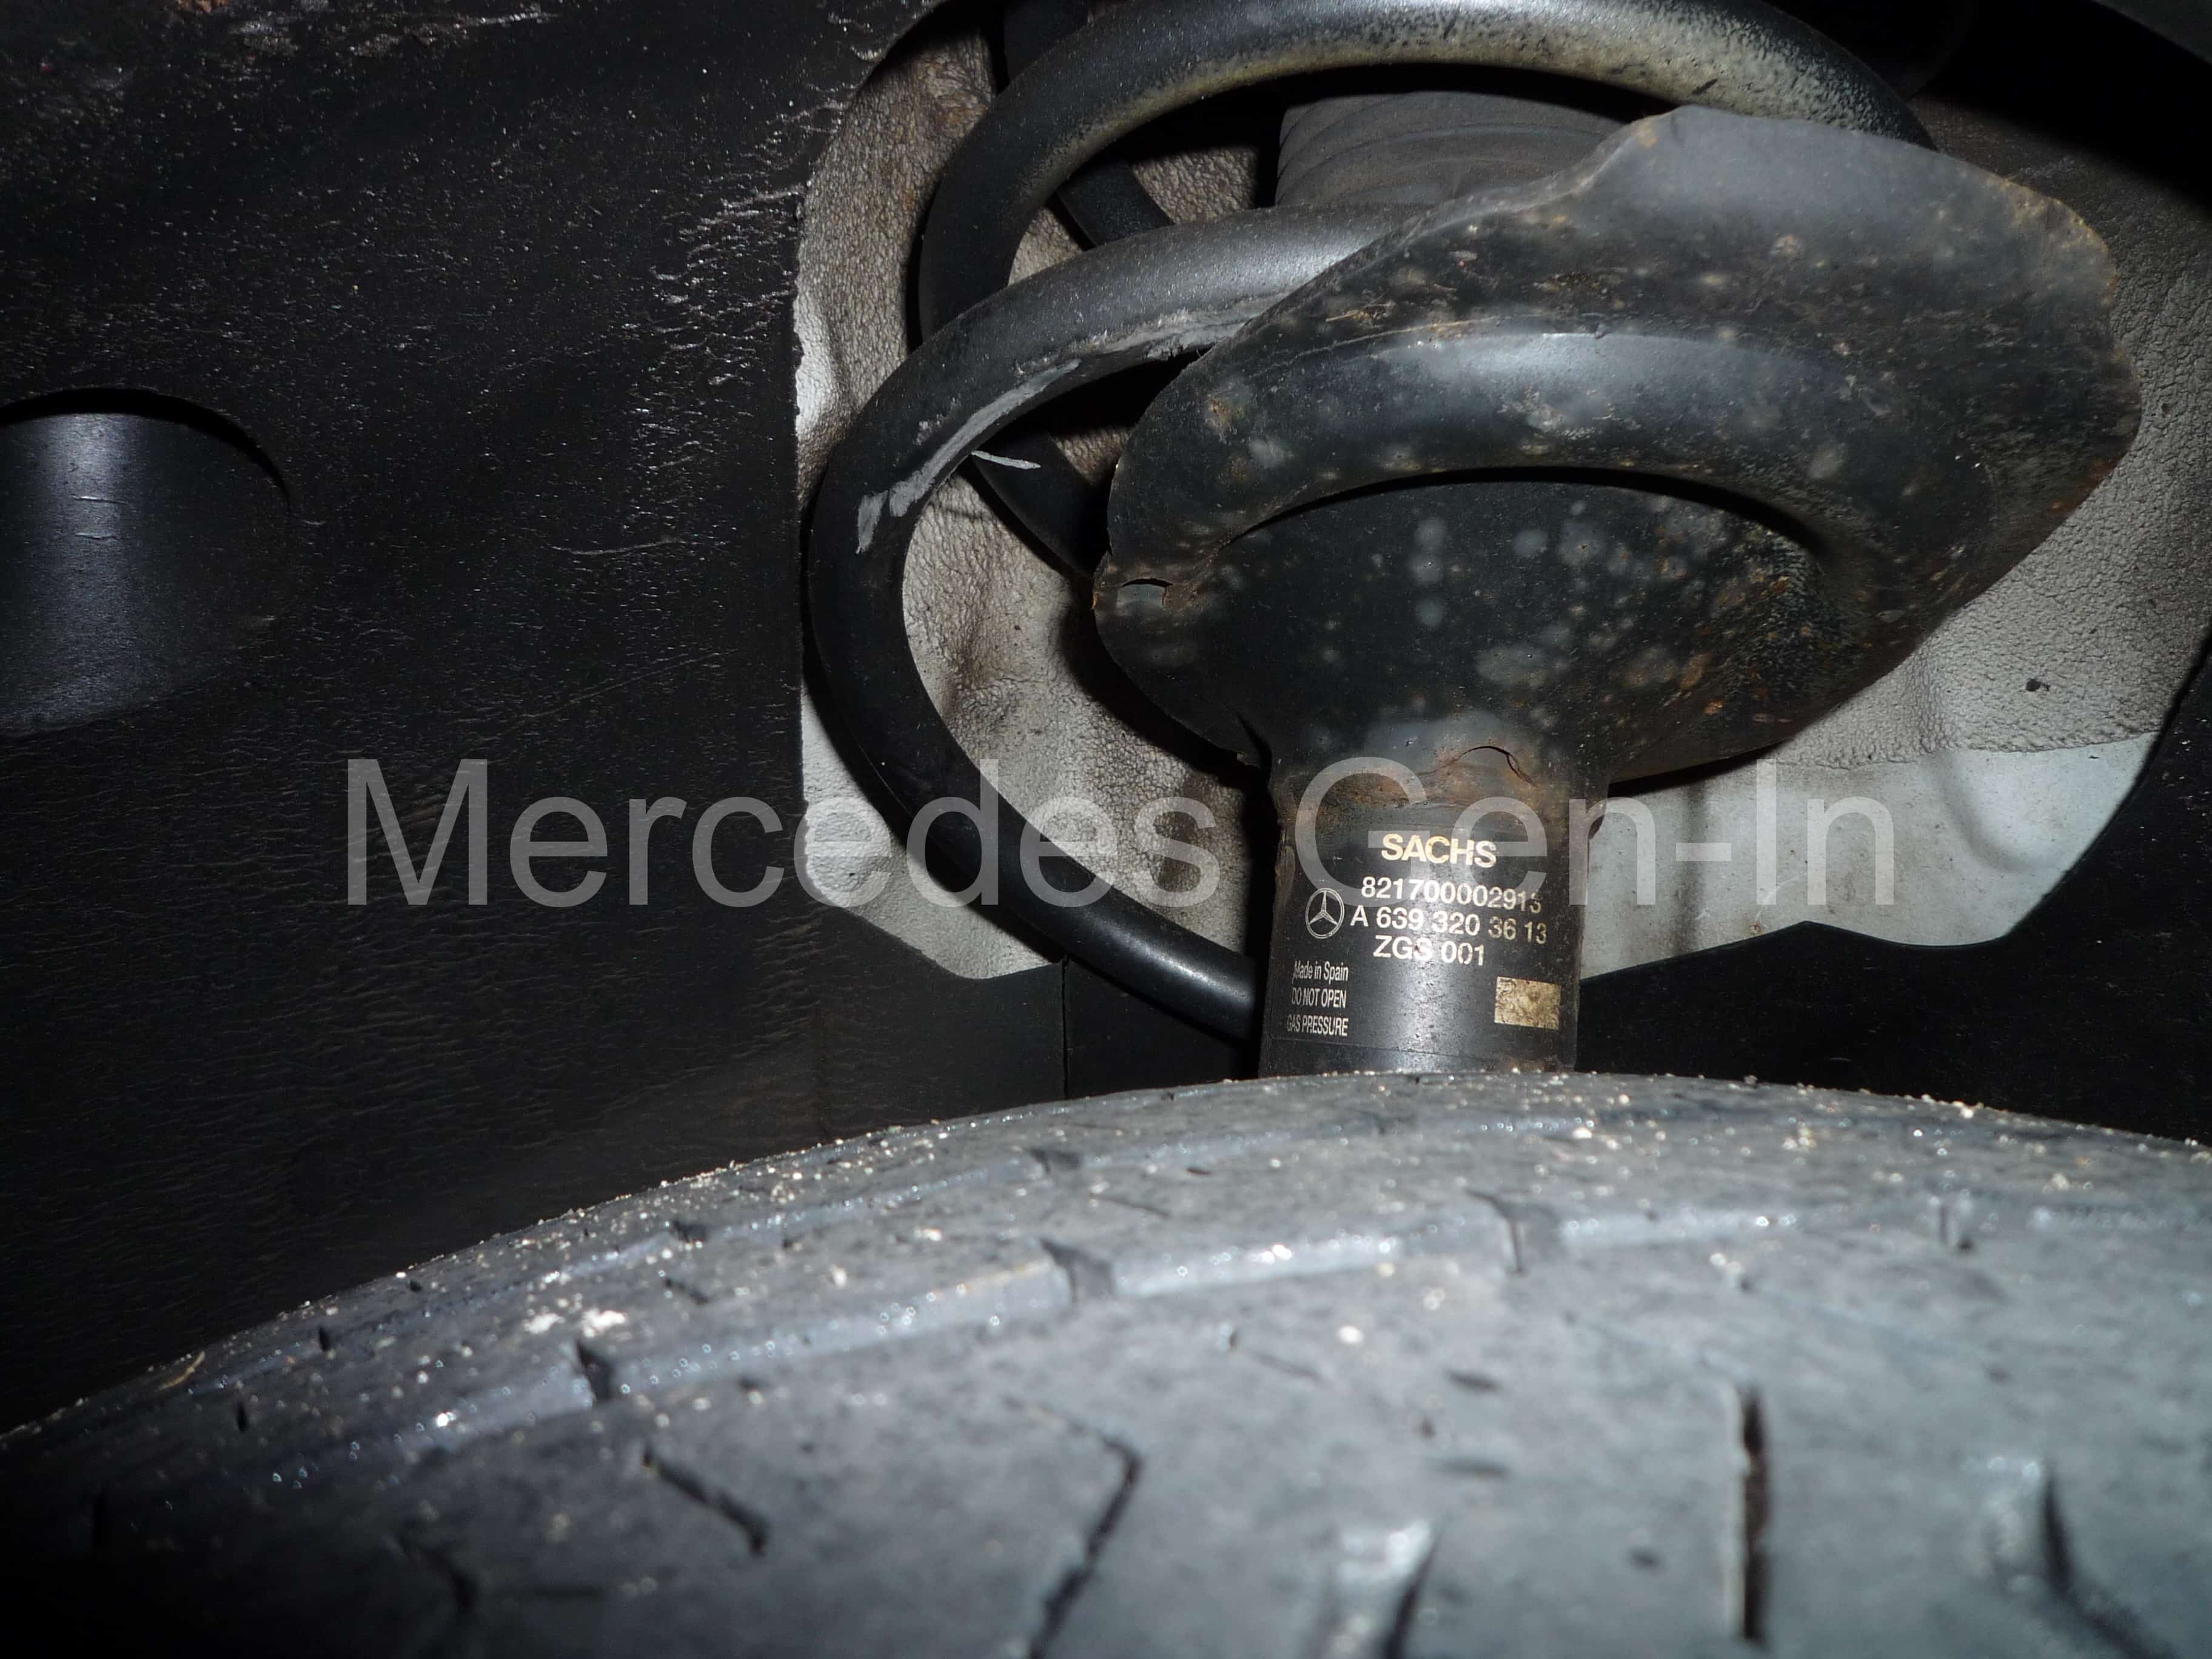 Mercedes Vito Viano Anschler Front Shock Absorber Strut Twin-Tube Gas Pressure